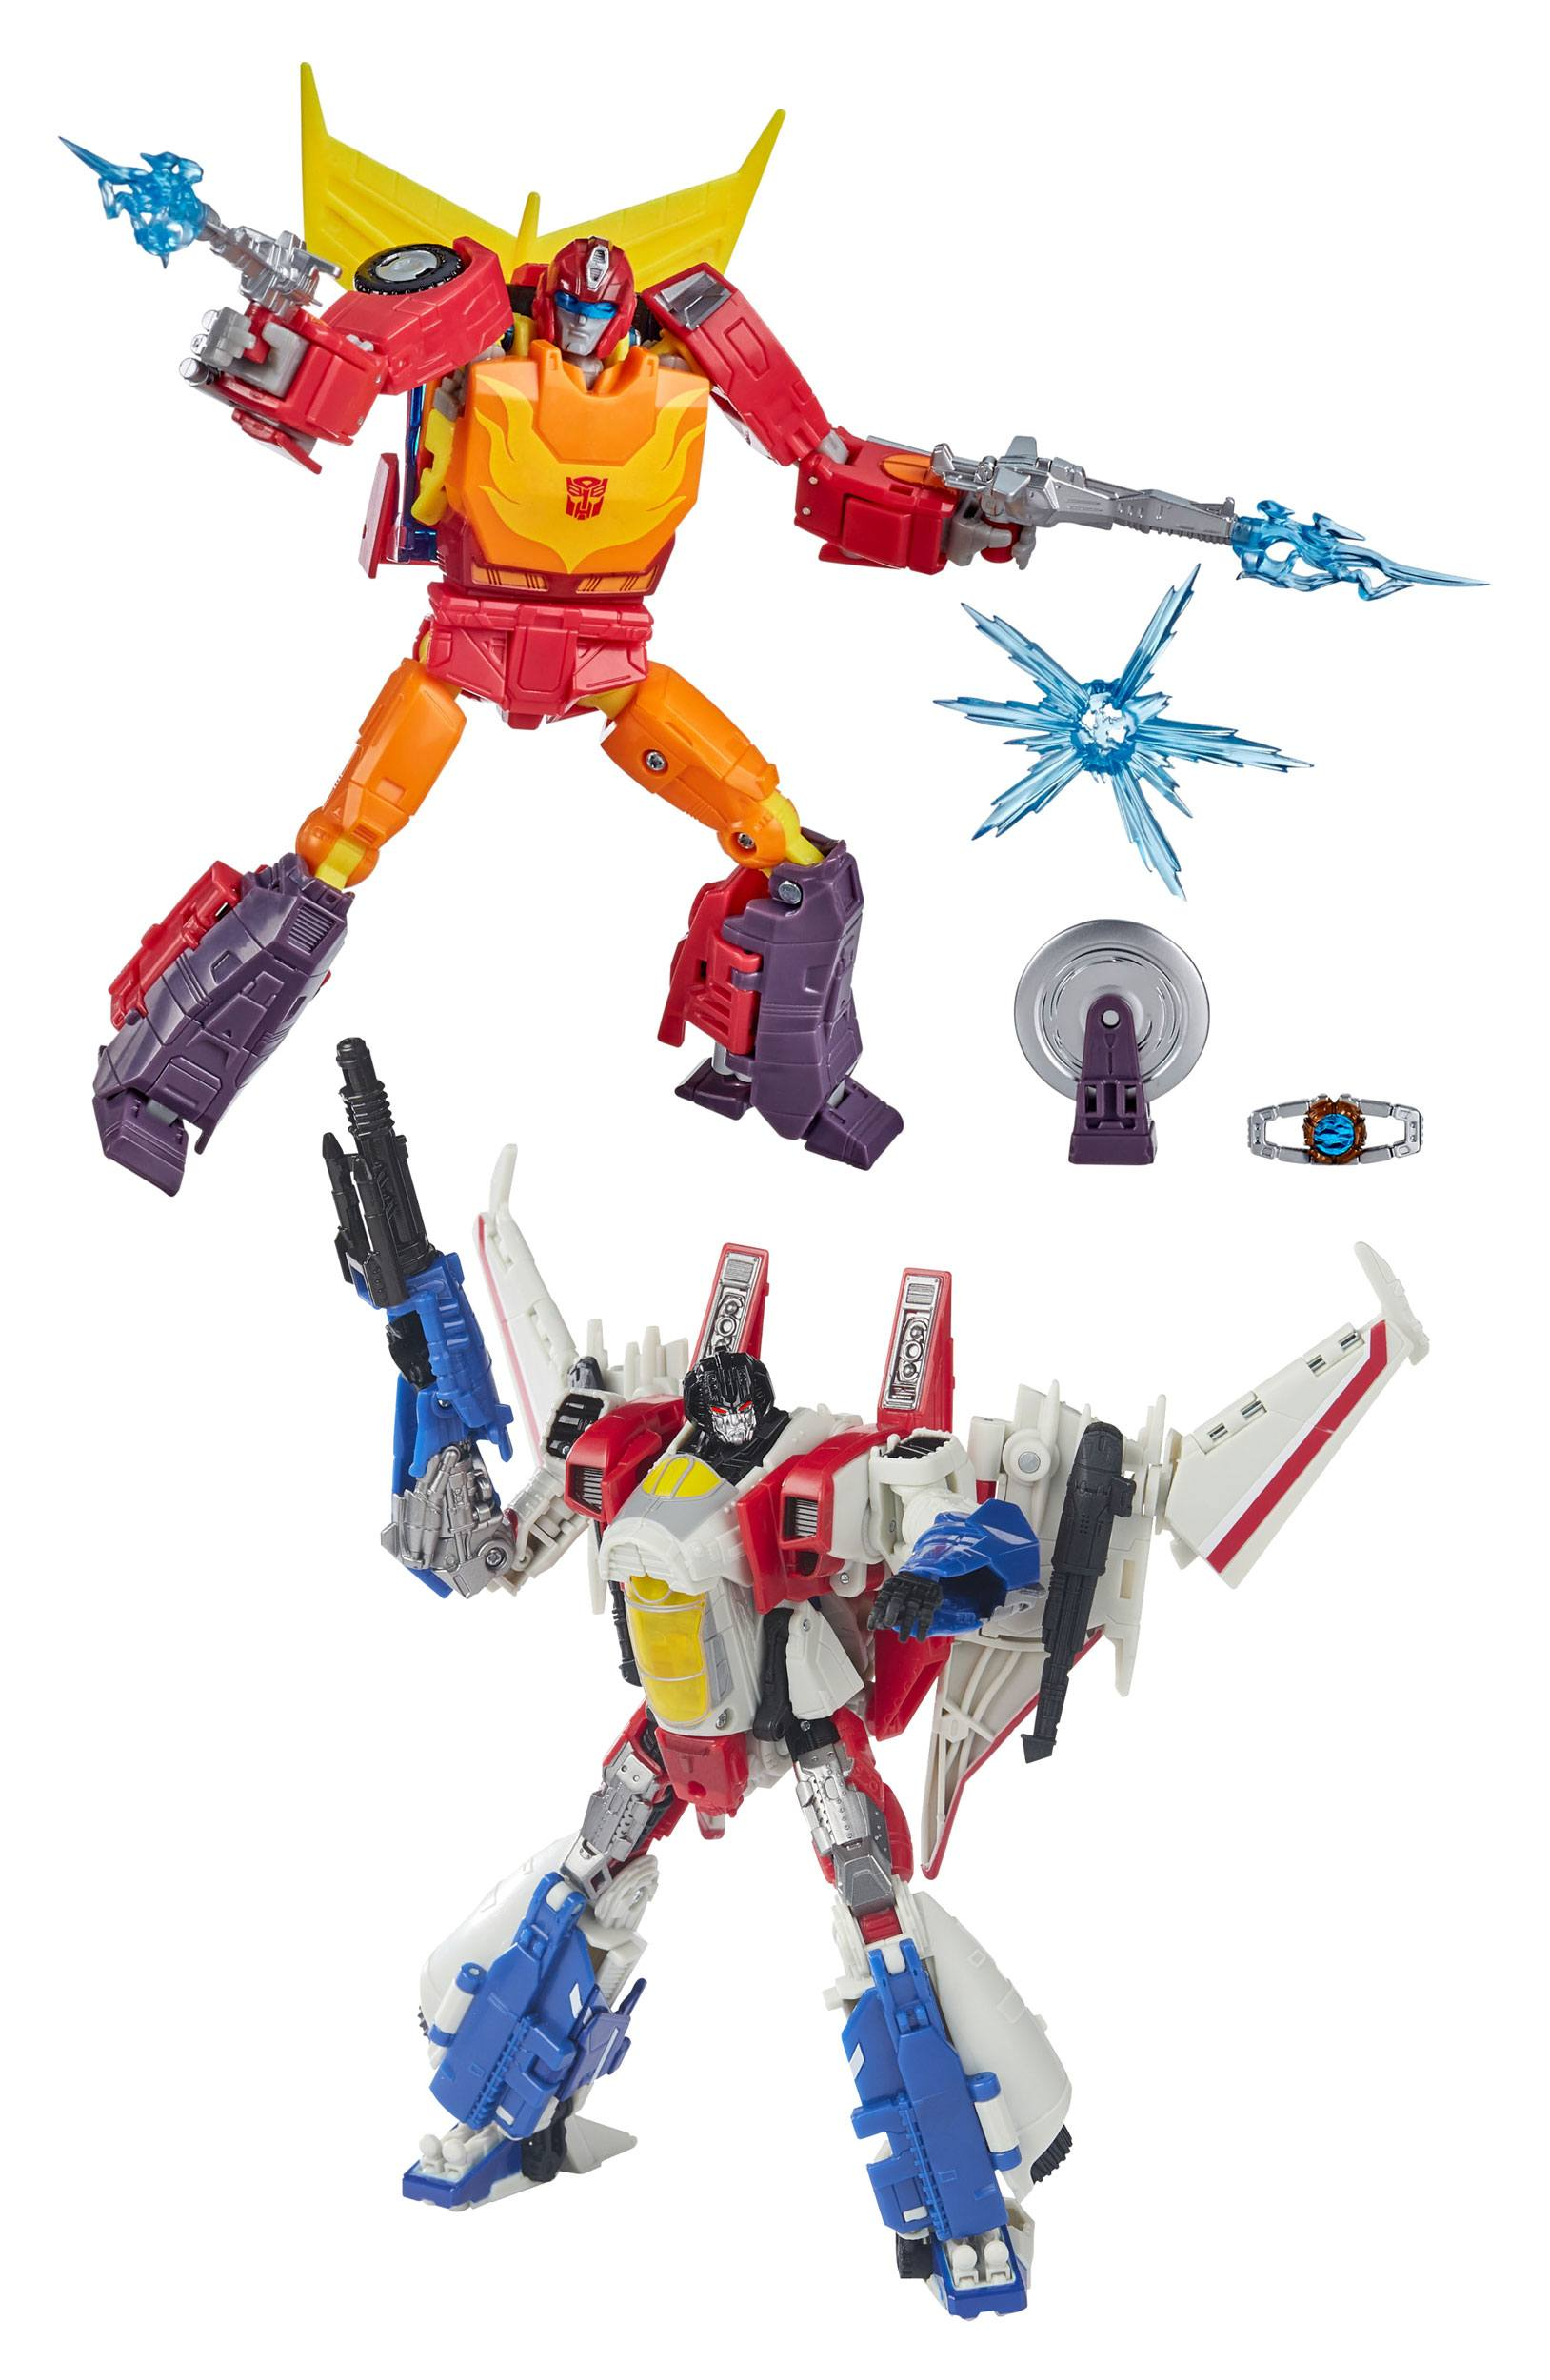 *PREORDER* Transformers Studio Series Voyager Class Action Figure: Serie 2 Completa by Hasbro